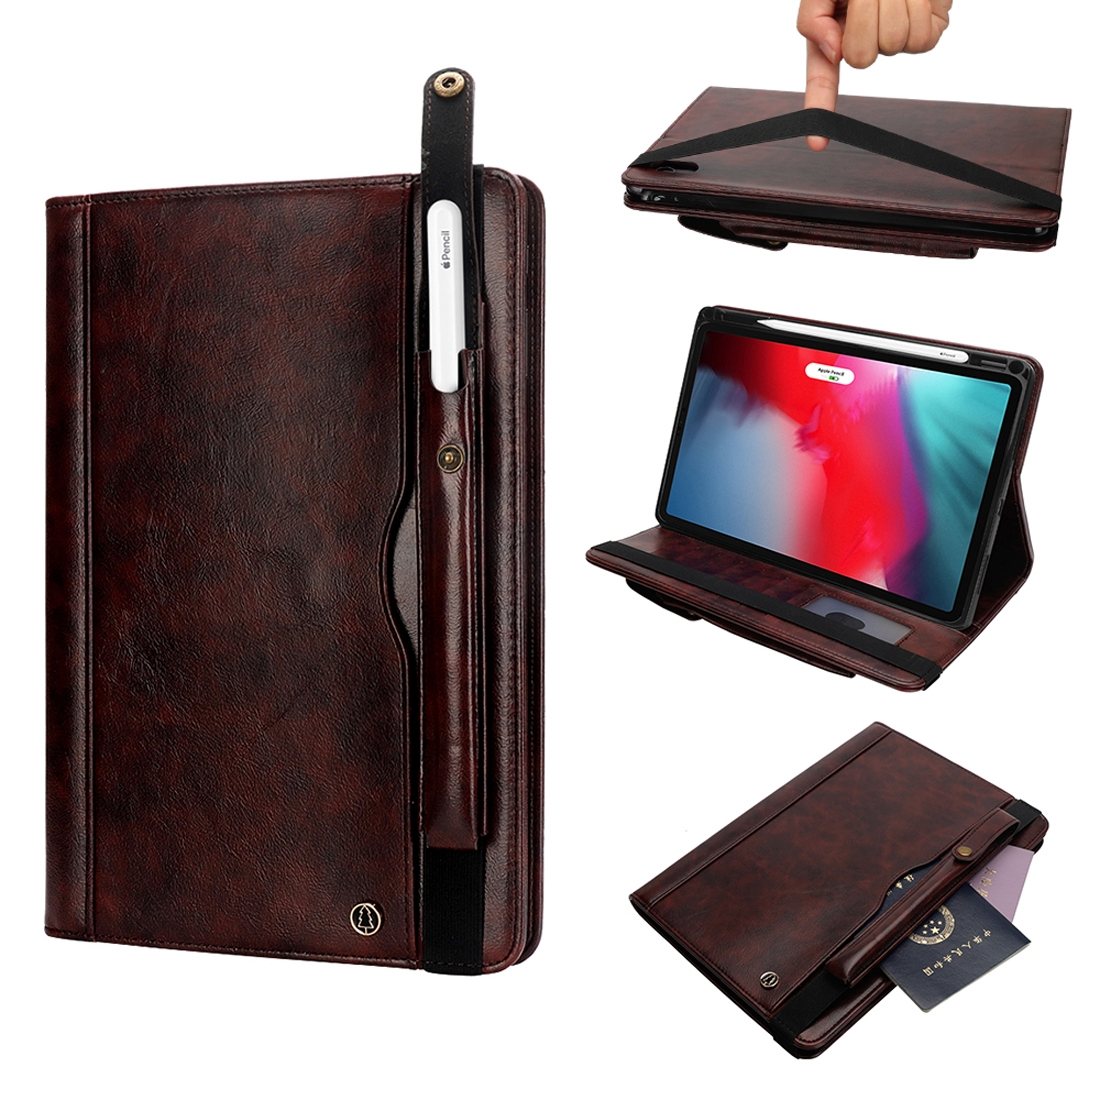 Hide Textured Leather iPad Pro 11 Case (2018), With Pen Holder  Slot (Dark Brown)